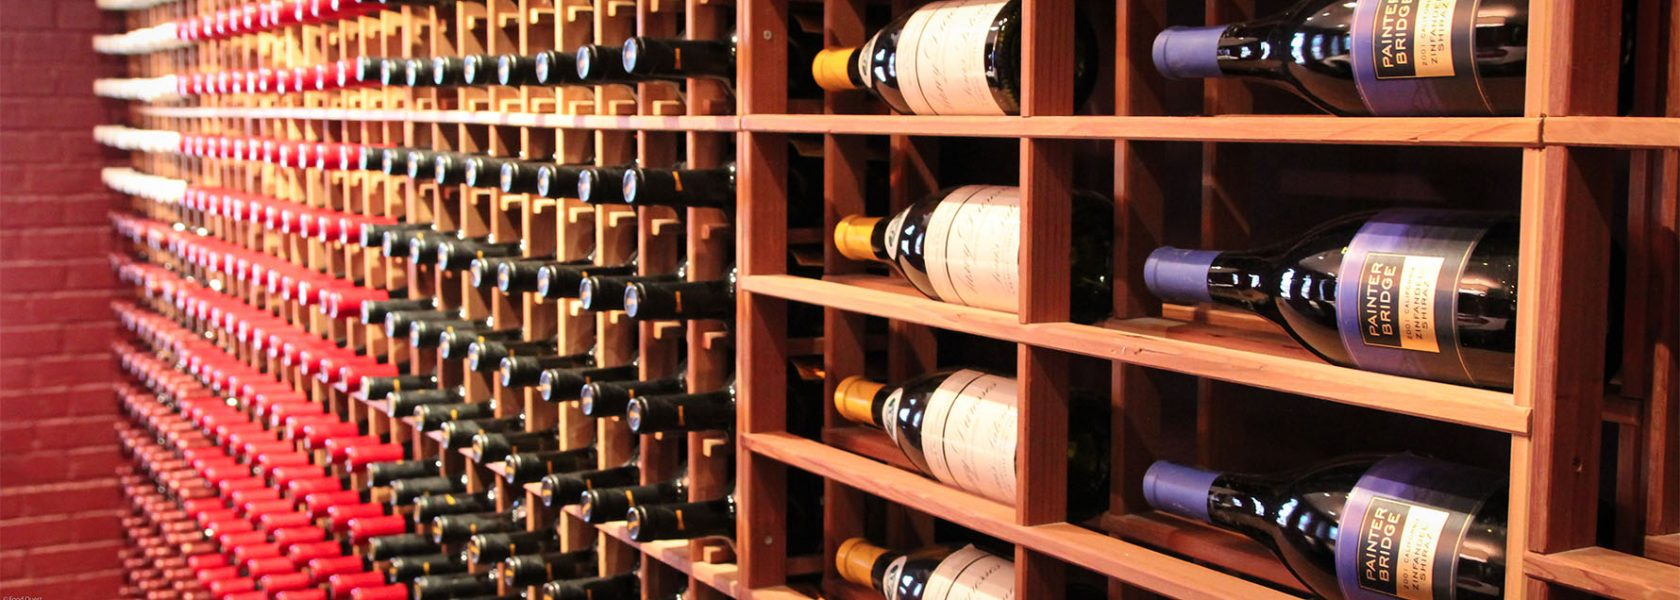 Wine Bottles displayed in wine cellar